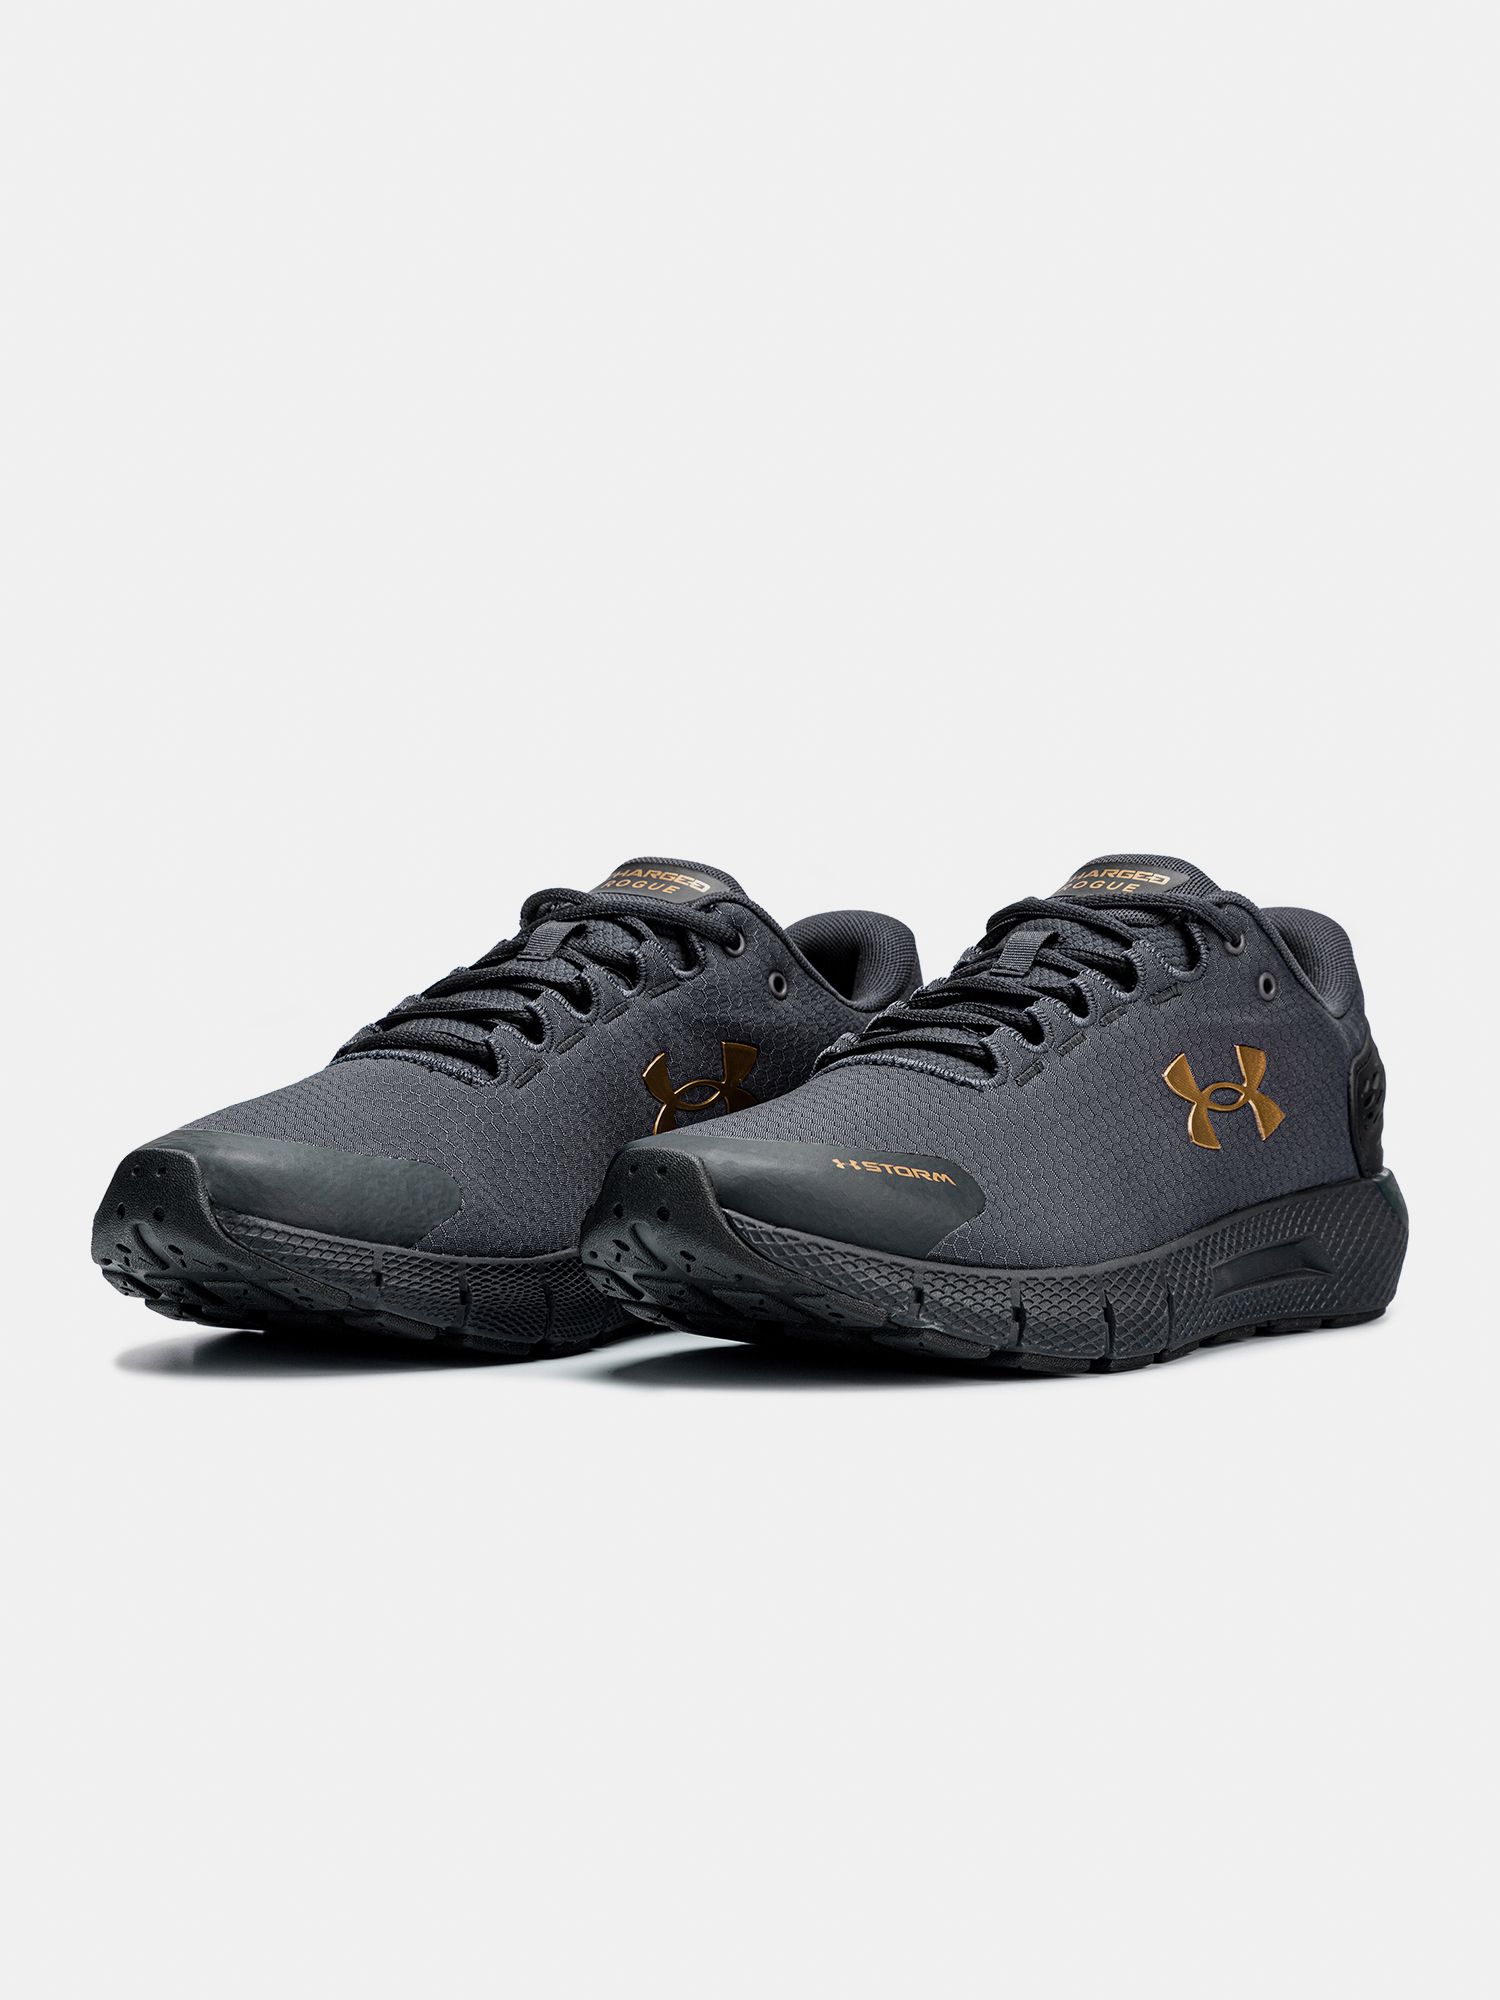 Boty Under Armour Charged Rogue 2 Storm (3)